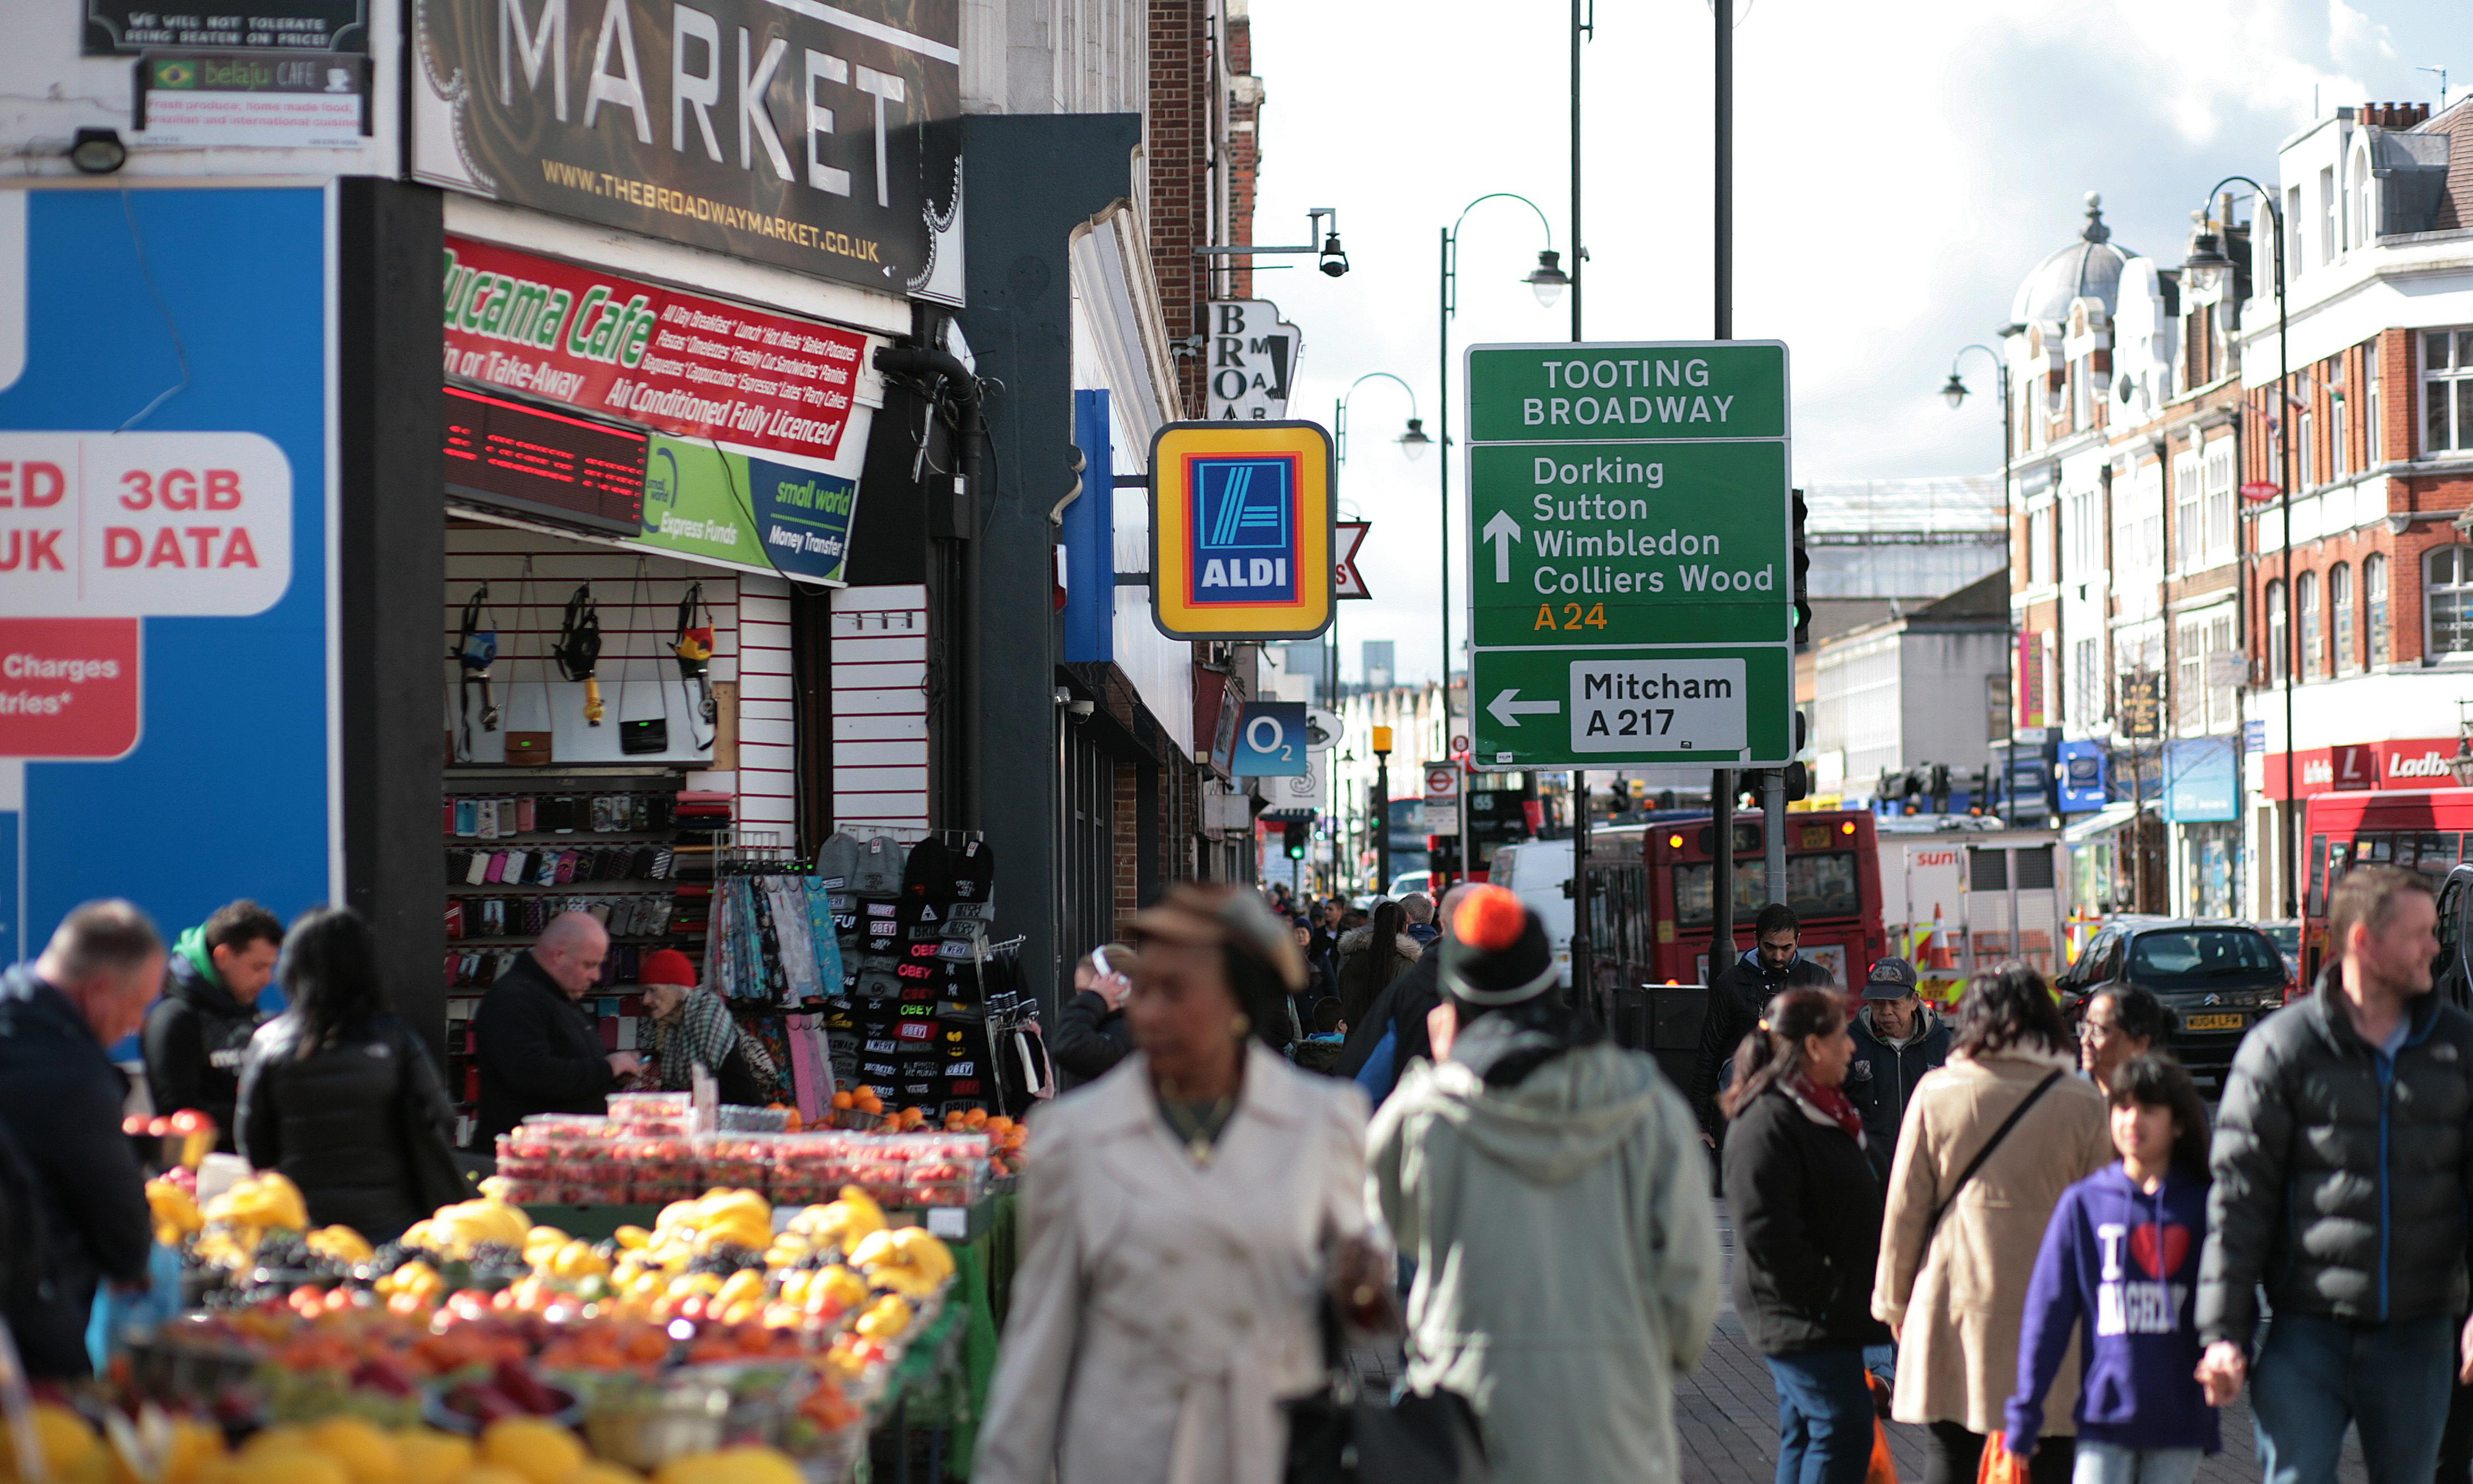 In praise of Tooting, south London